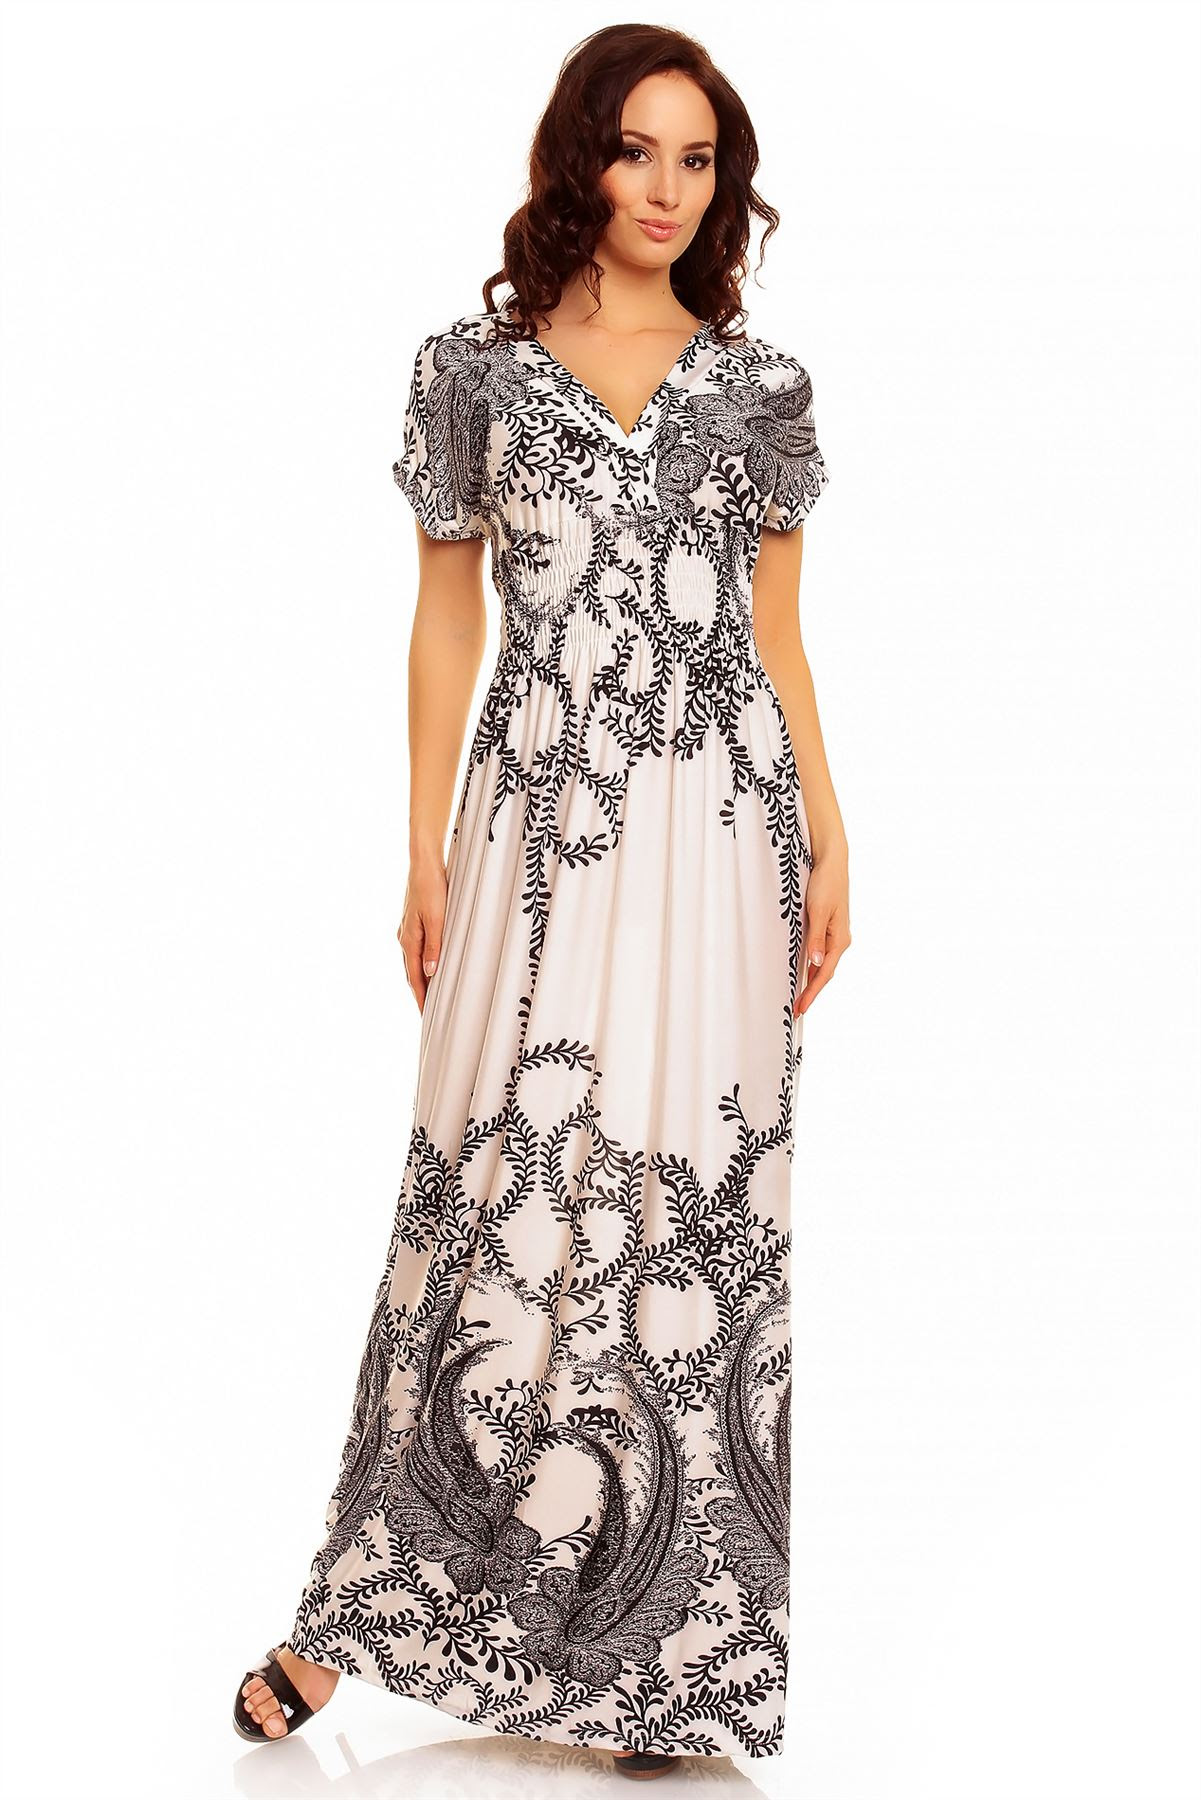 womens floral summer casual beach holiday long maxi day